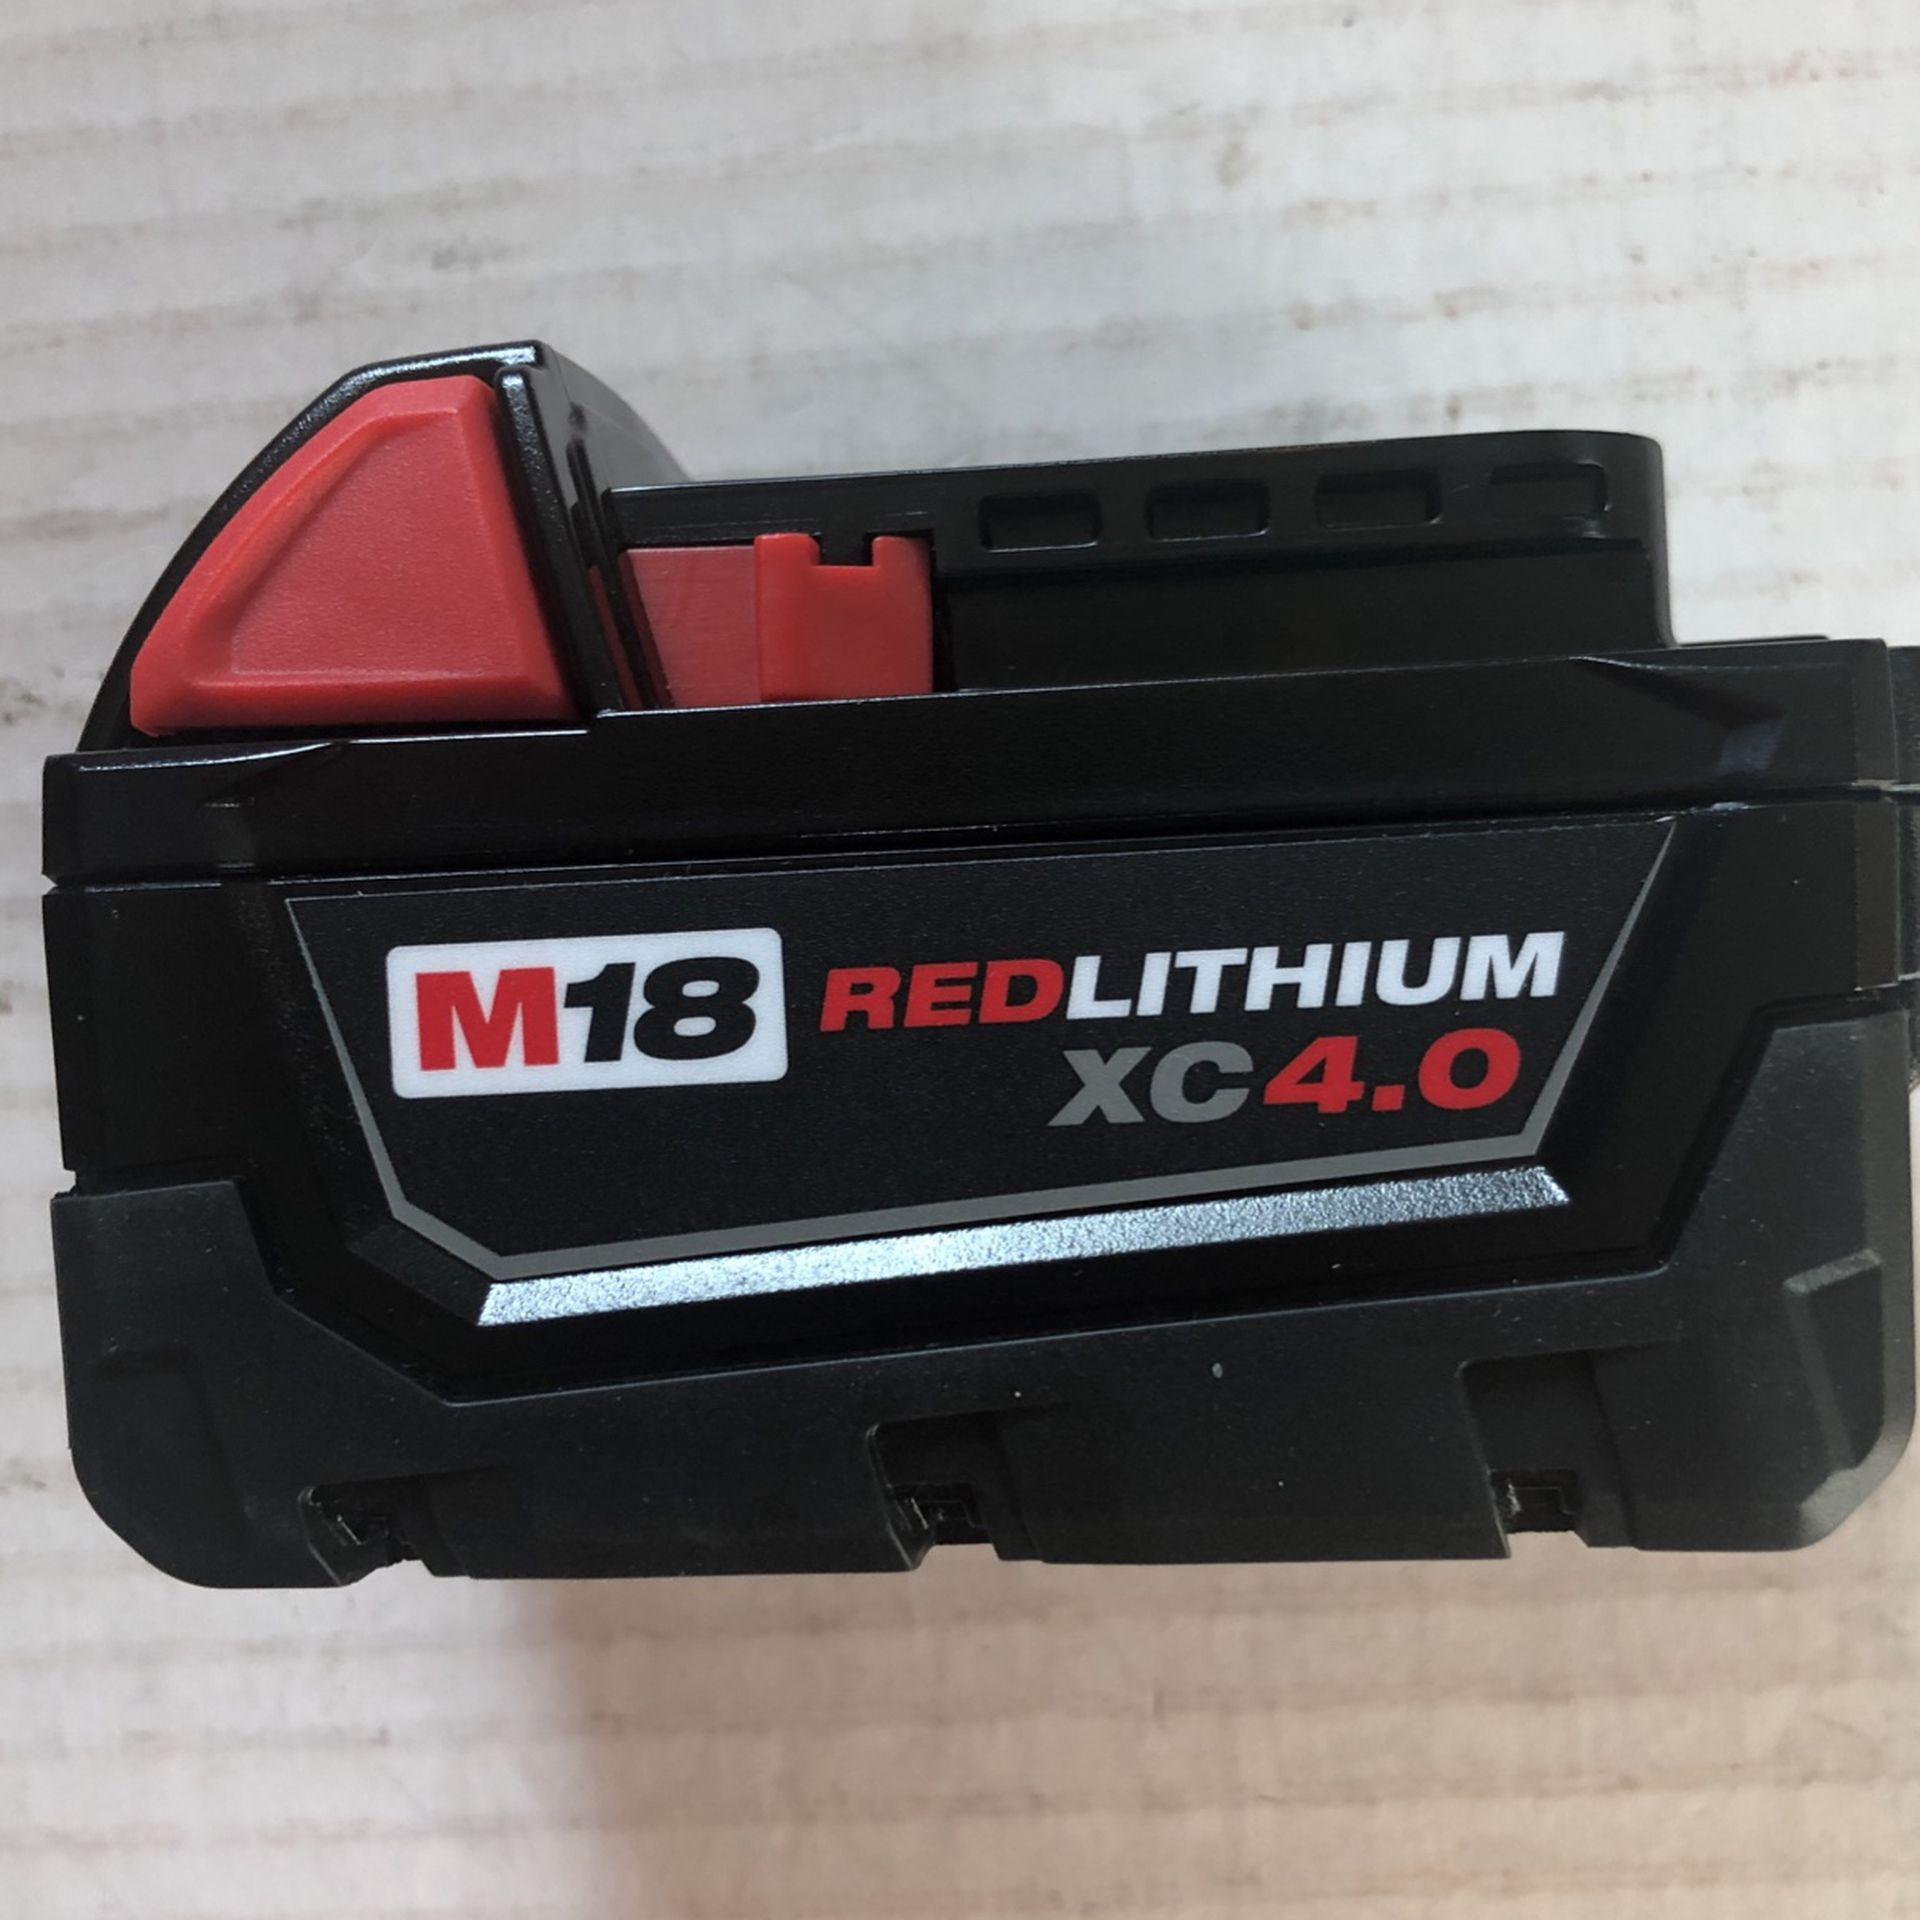 Brand New Milwaukee M18 Red Lithium XC 4.0 AH Battery       60 Firm on Price      60   Firme en Precio